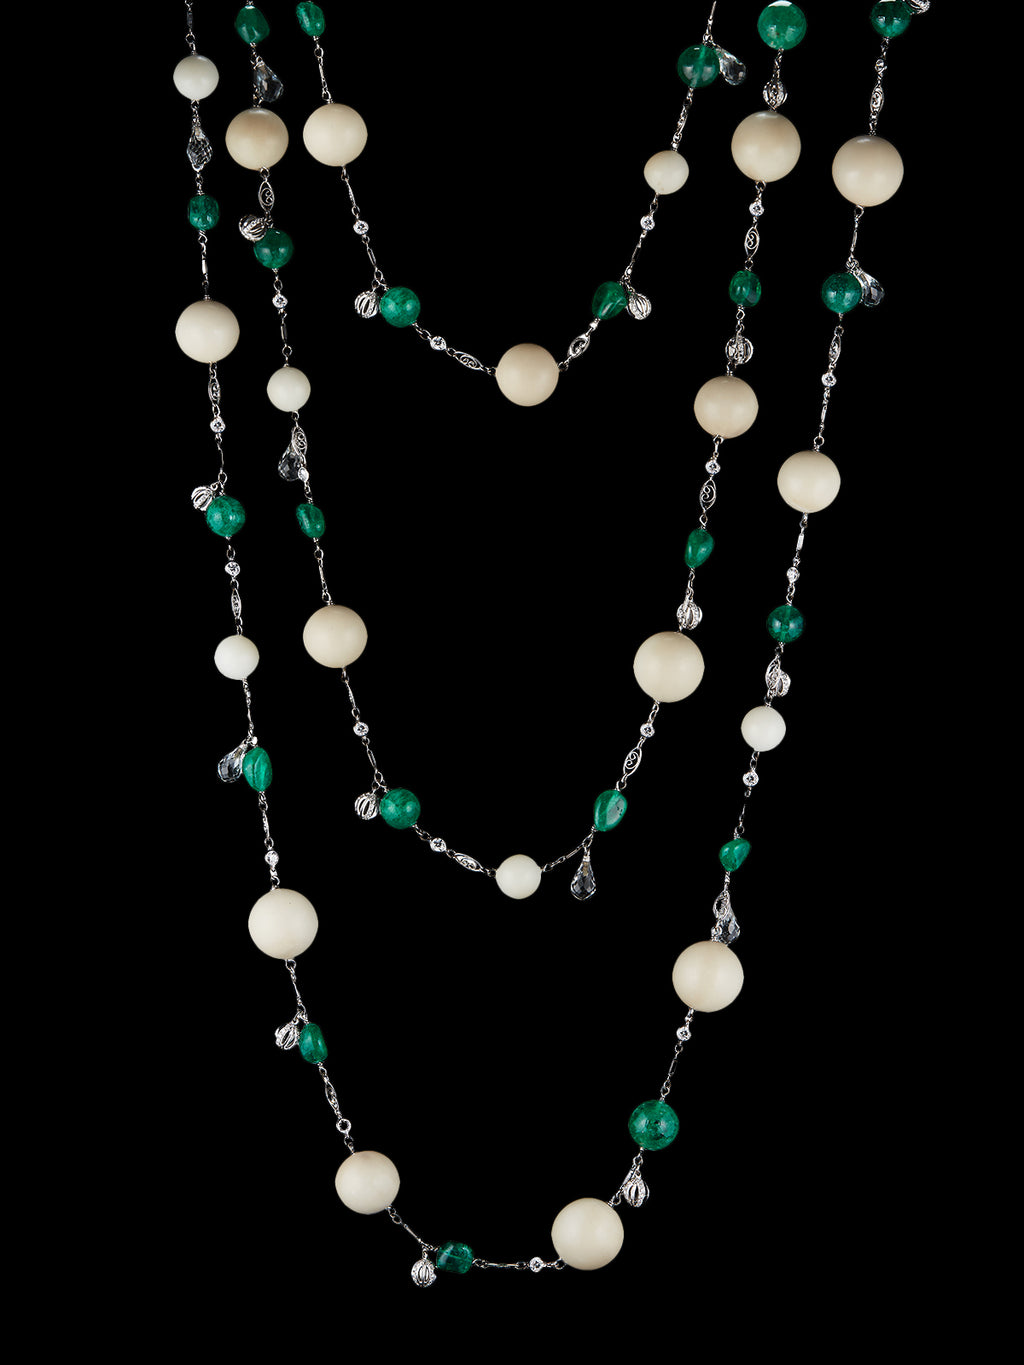 Tagua and Emerald Bead Sautoir Necklace